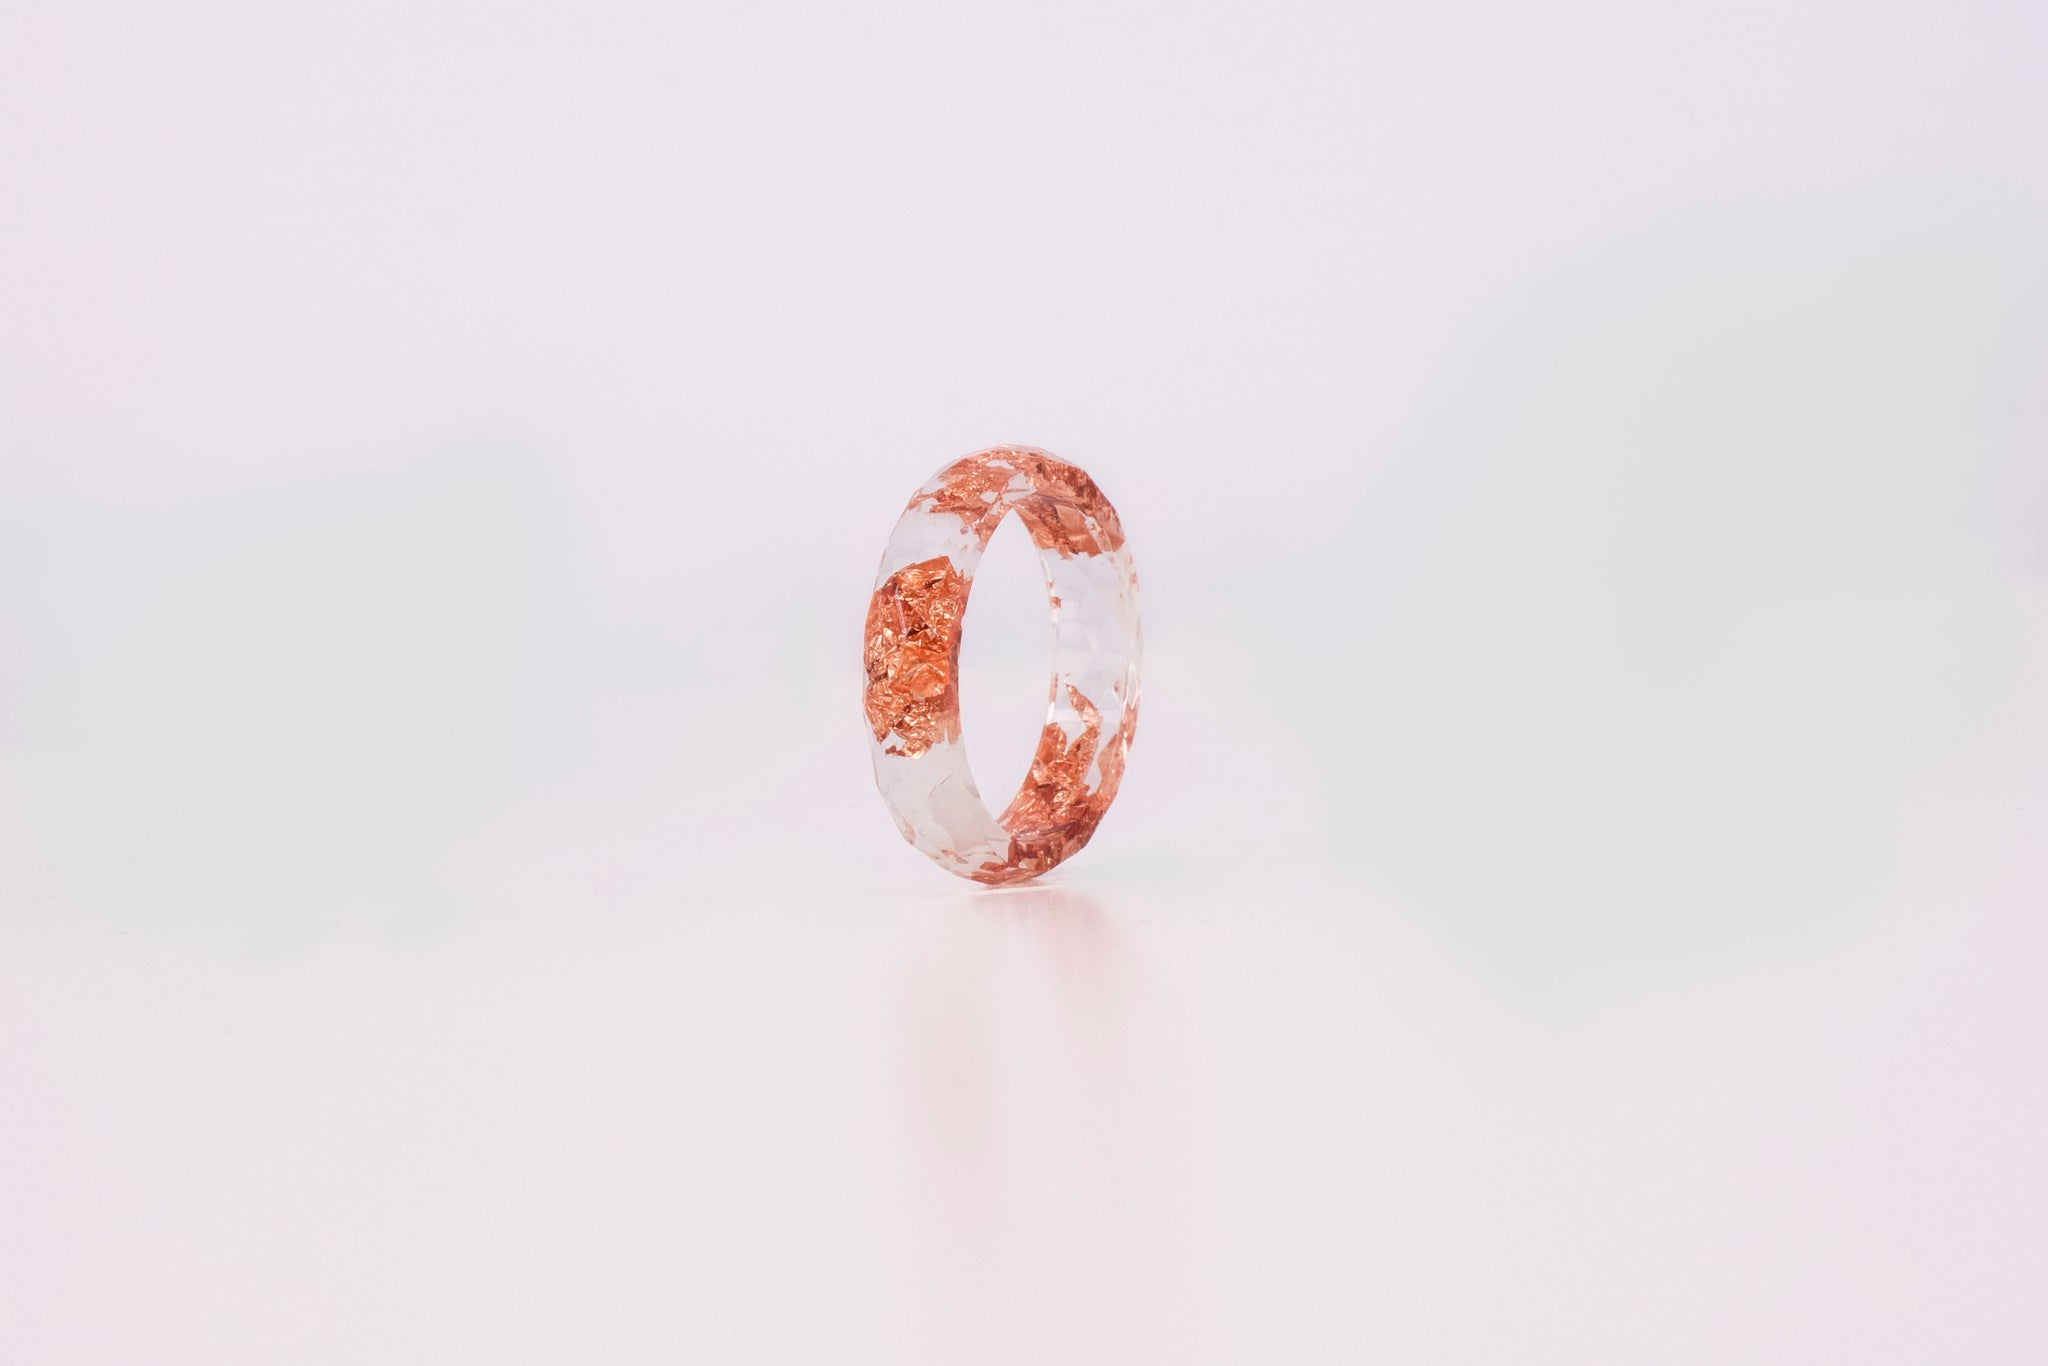 Transparent Ring With Copper Flakes